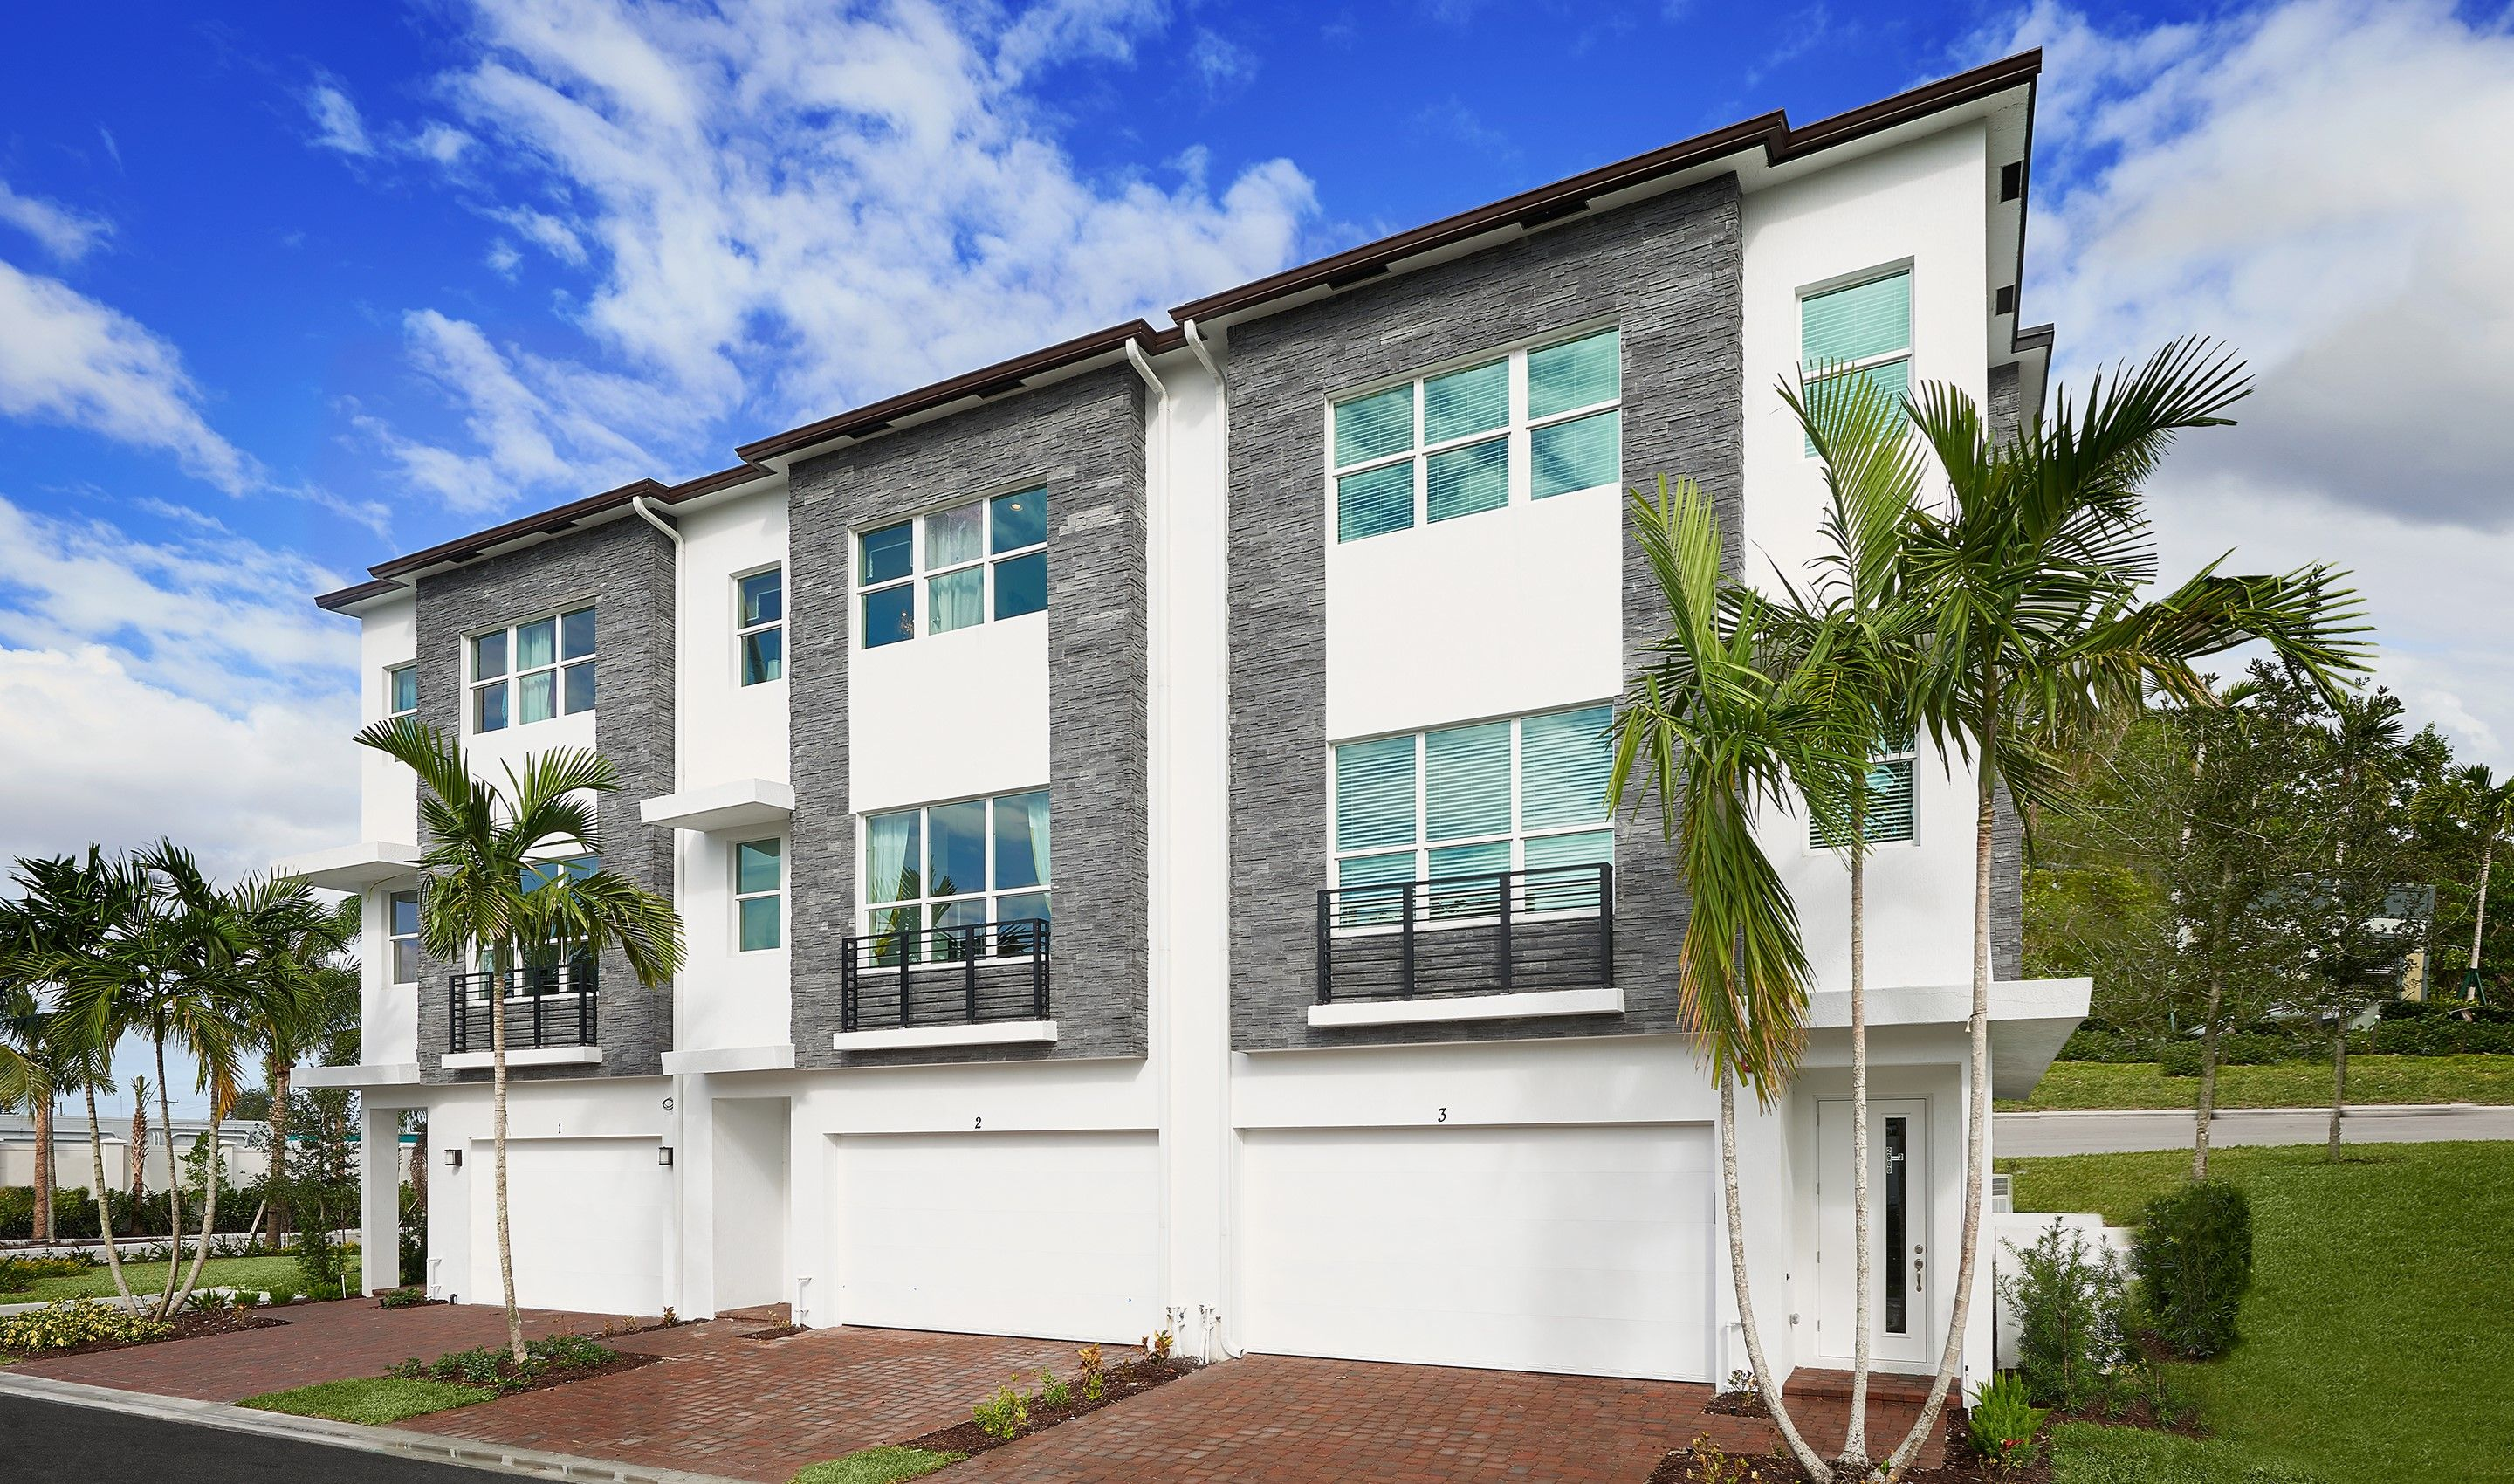 Photo of The Pointe at Middle River in Oakland Park, FL 33334